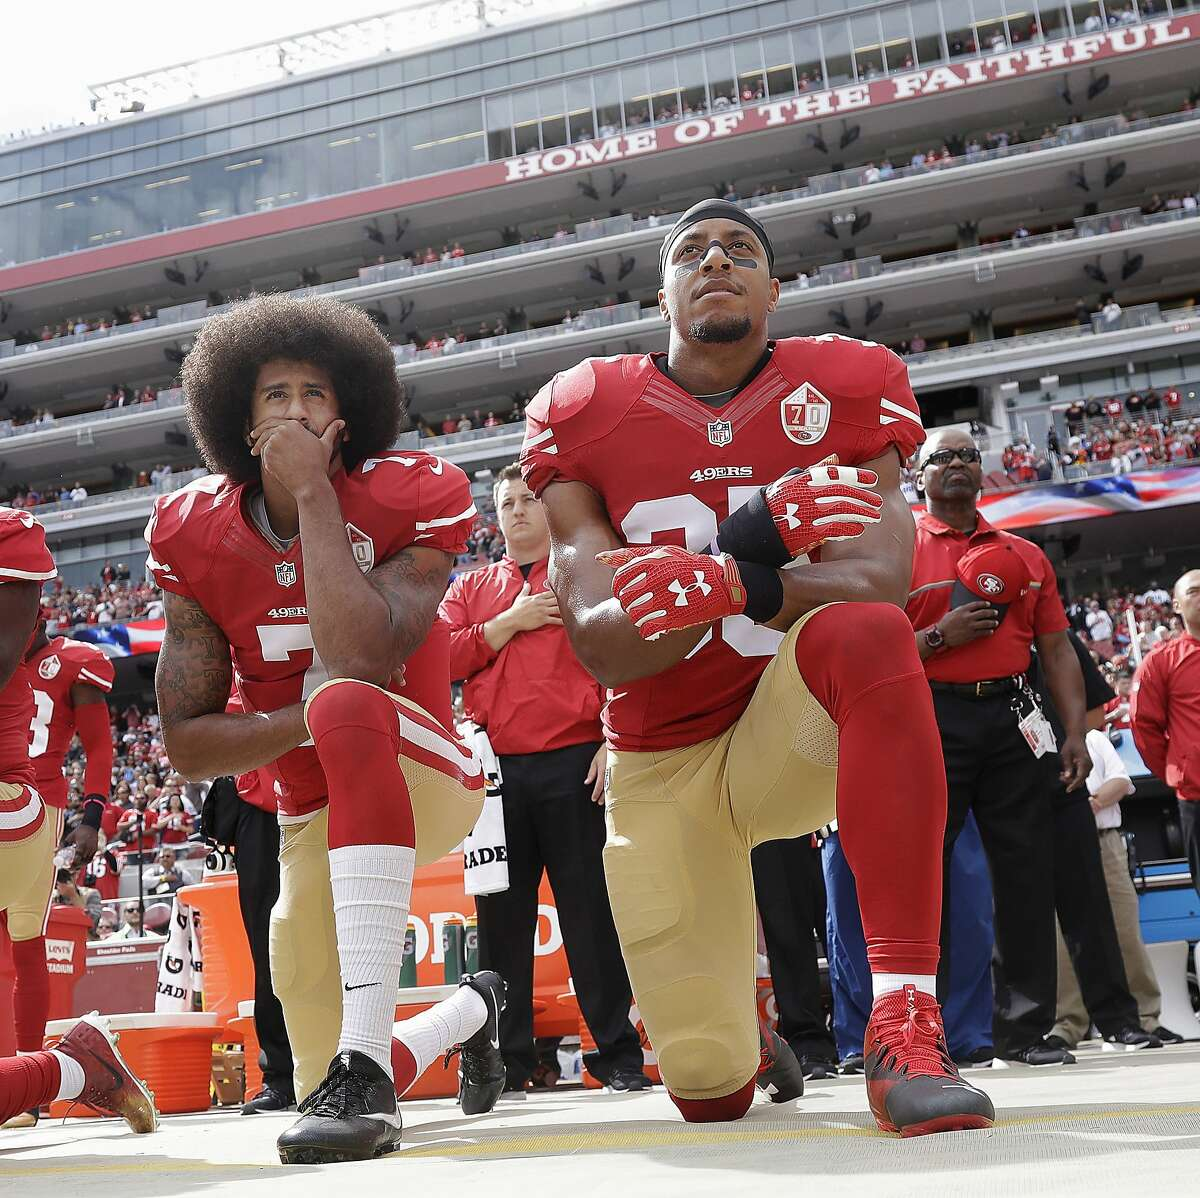 September 1 2016 - Kaepernick (L) is joined by Eric Reid (R) in kneeling for the national anthem. They opted to kneel rather than sit down (as Kaepernick had been doing) to show more respect for military. This picture was taken a month later, on Oct. 2, 2016 before an NFL football game against the Dallas Cowboys in Santa Clara, Calif.